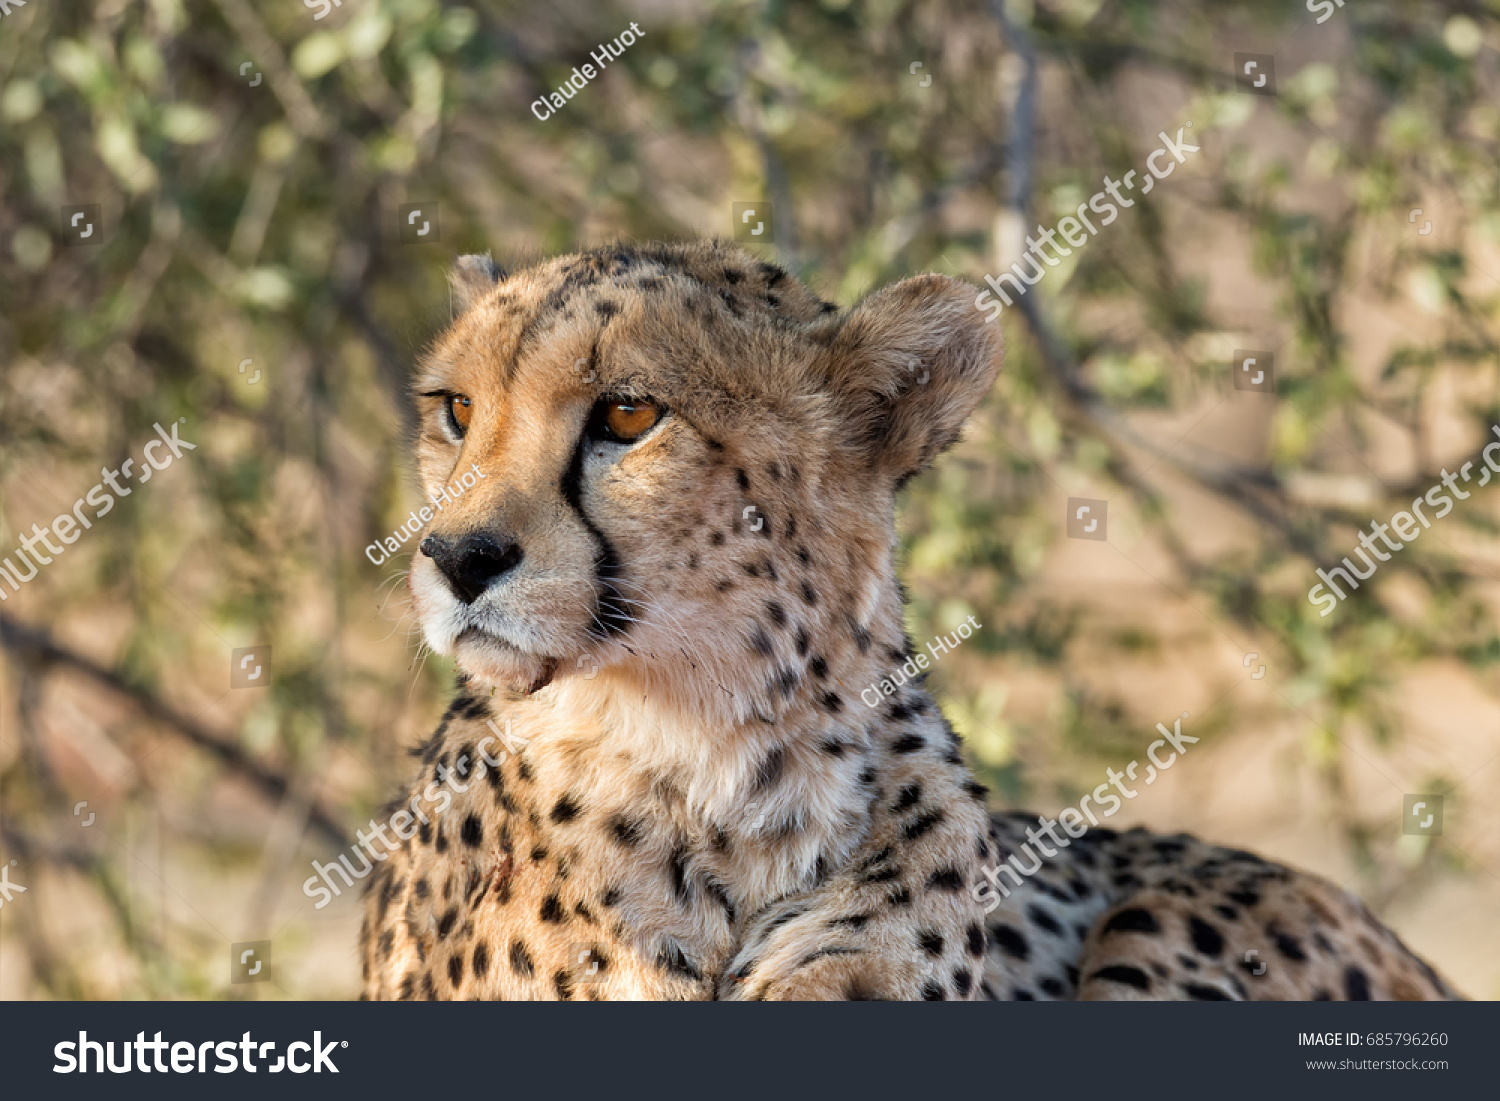 Cheetah (Acinonyx jubatus) resting under a tree in Okonjima Nature Reserve, Namibia.